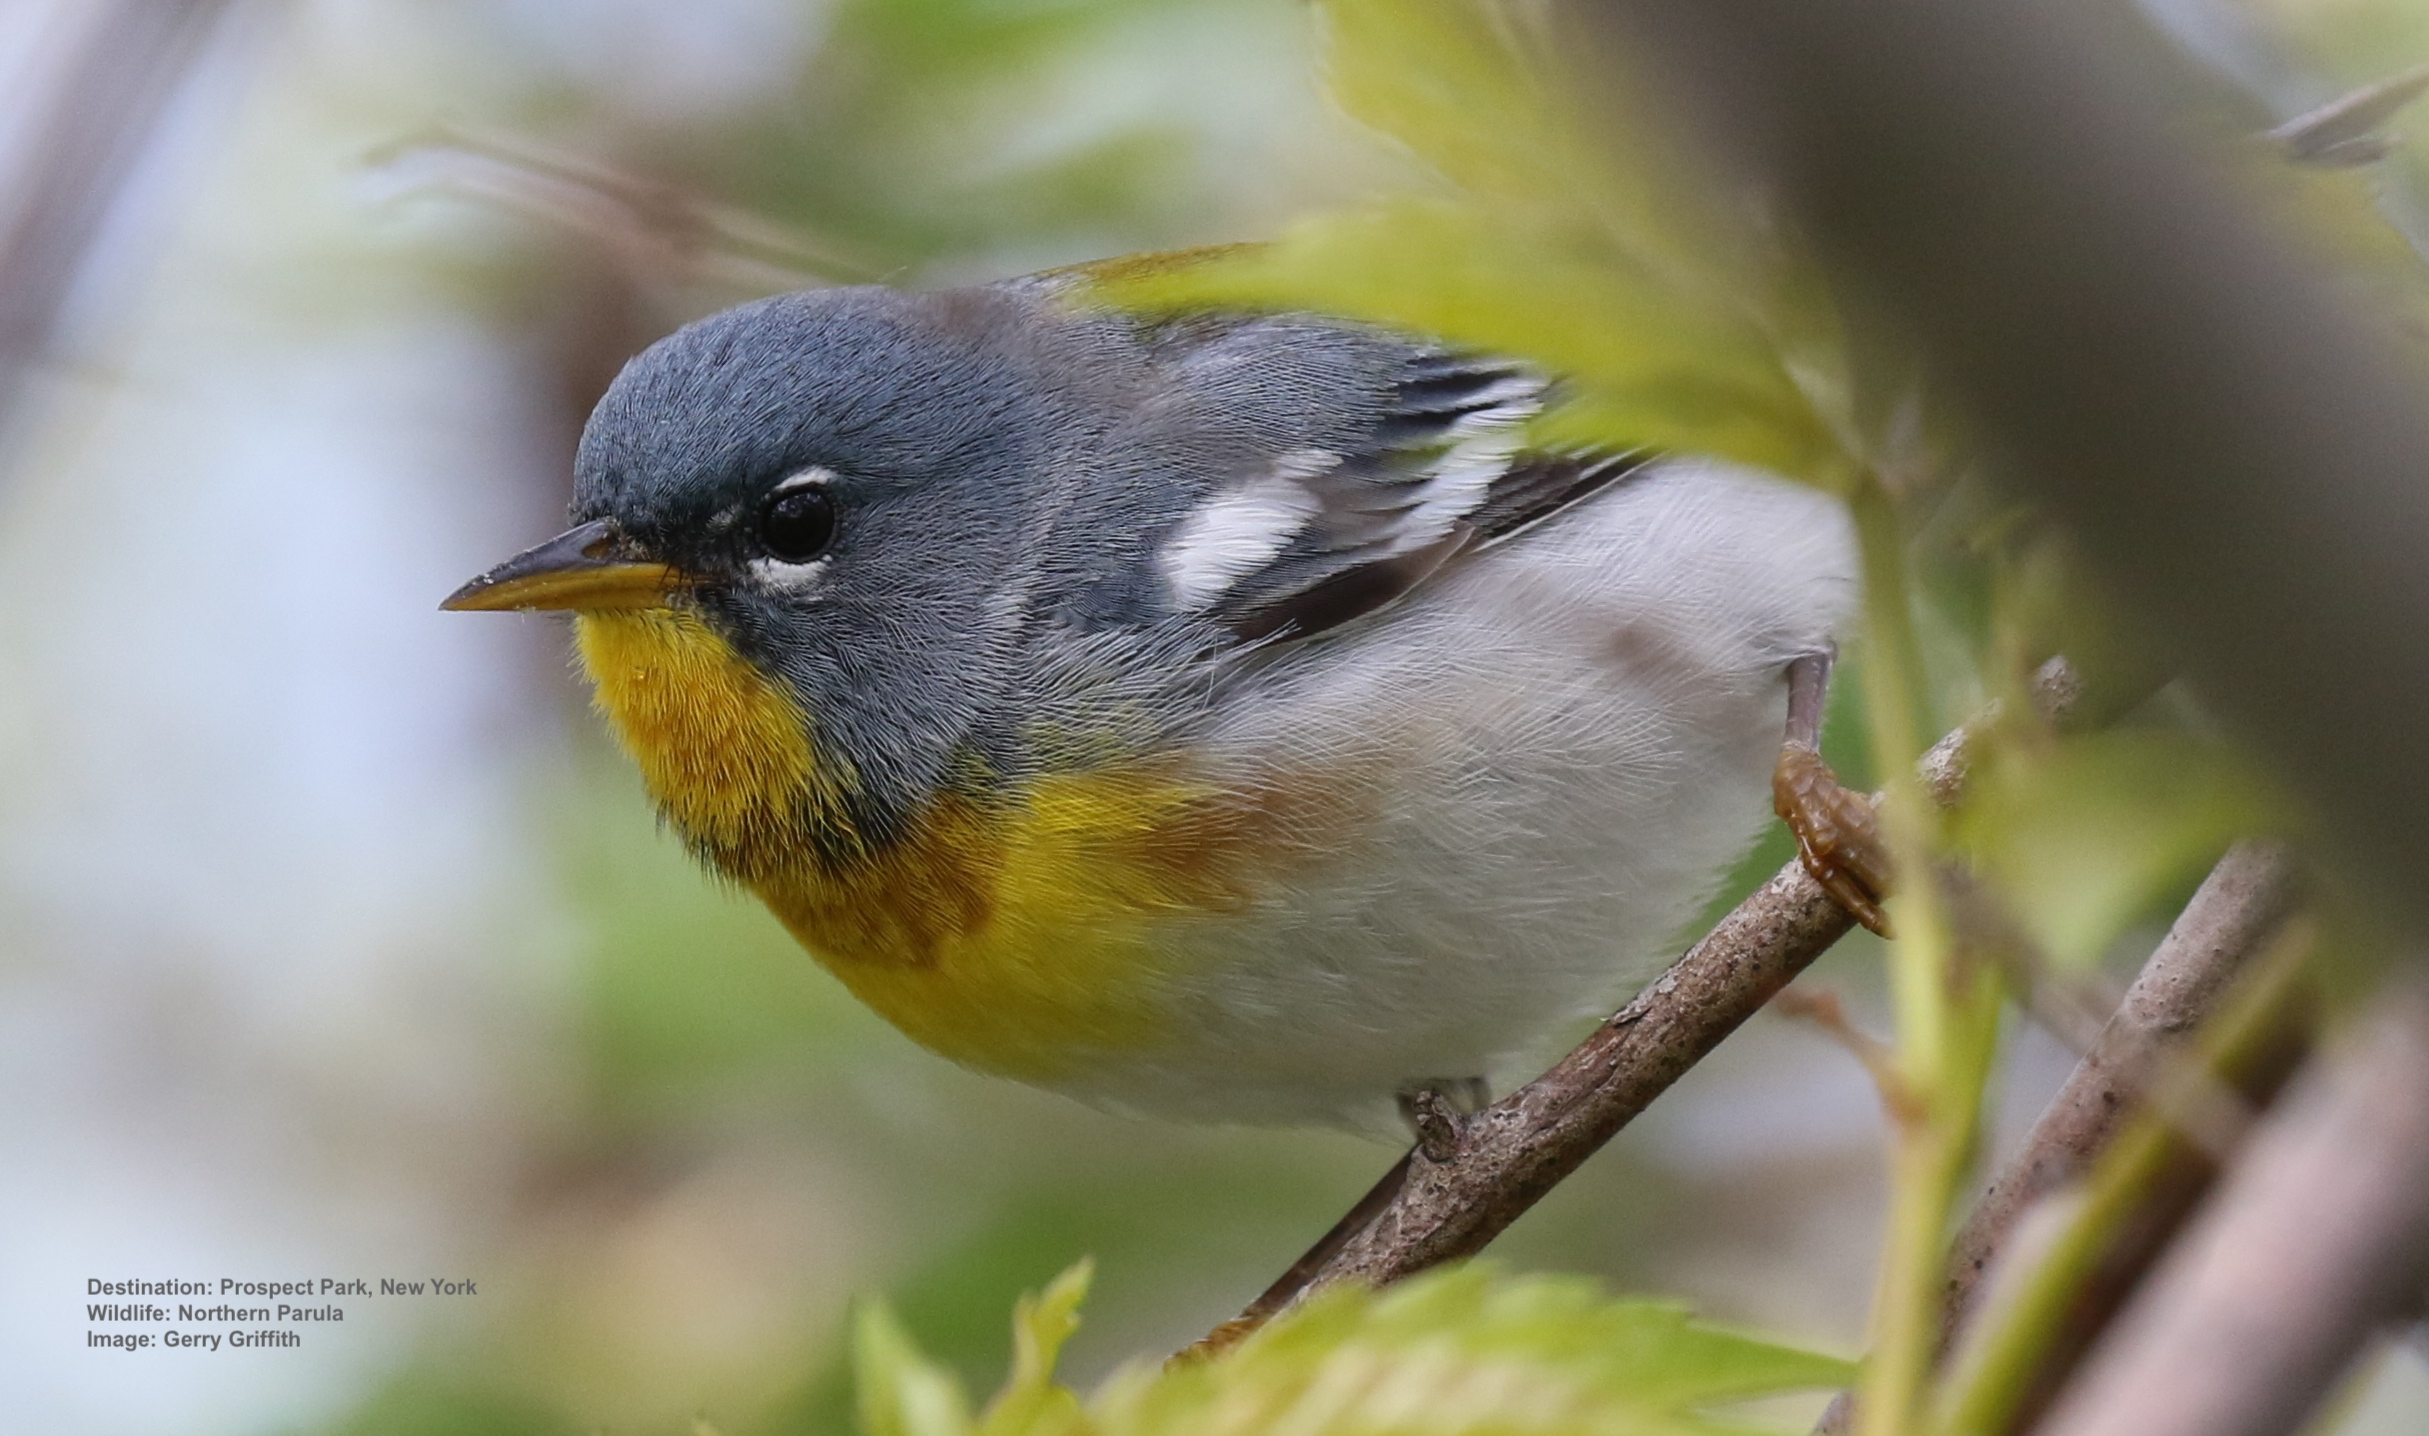 Day 1-5: Northern Parula warbler, Prospect Park, New York